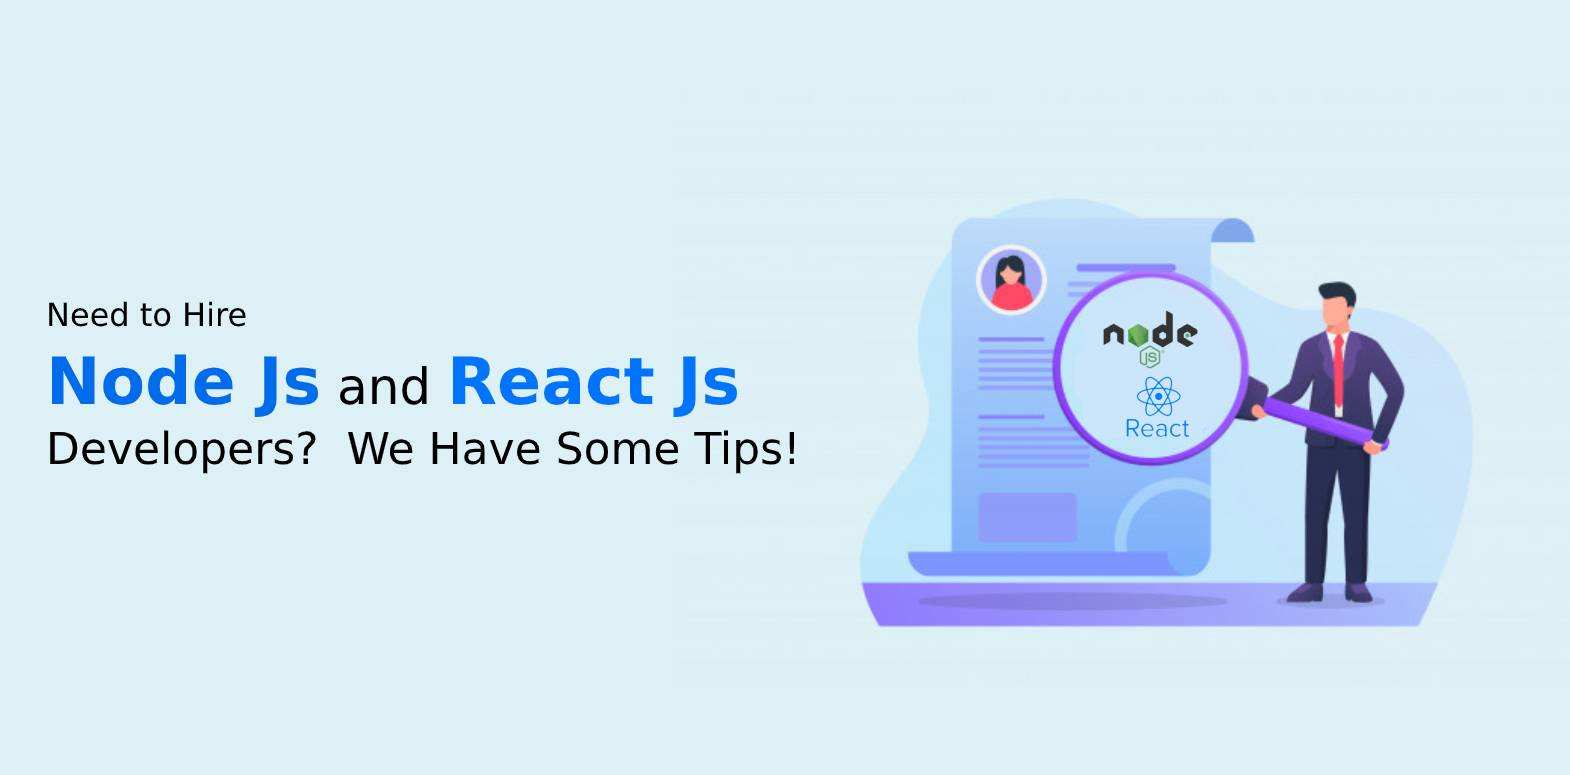 Hire Node Js and React Js Developers